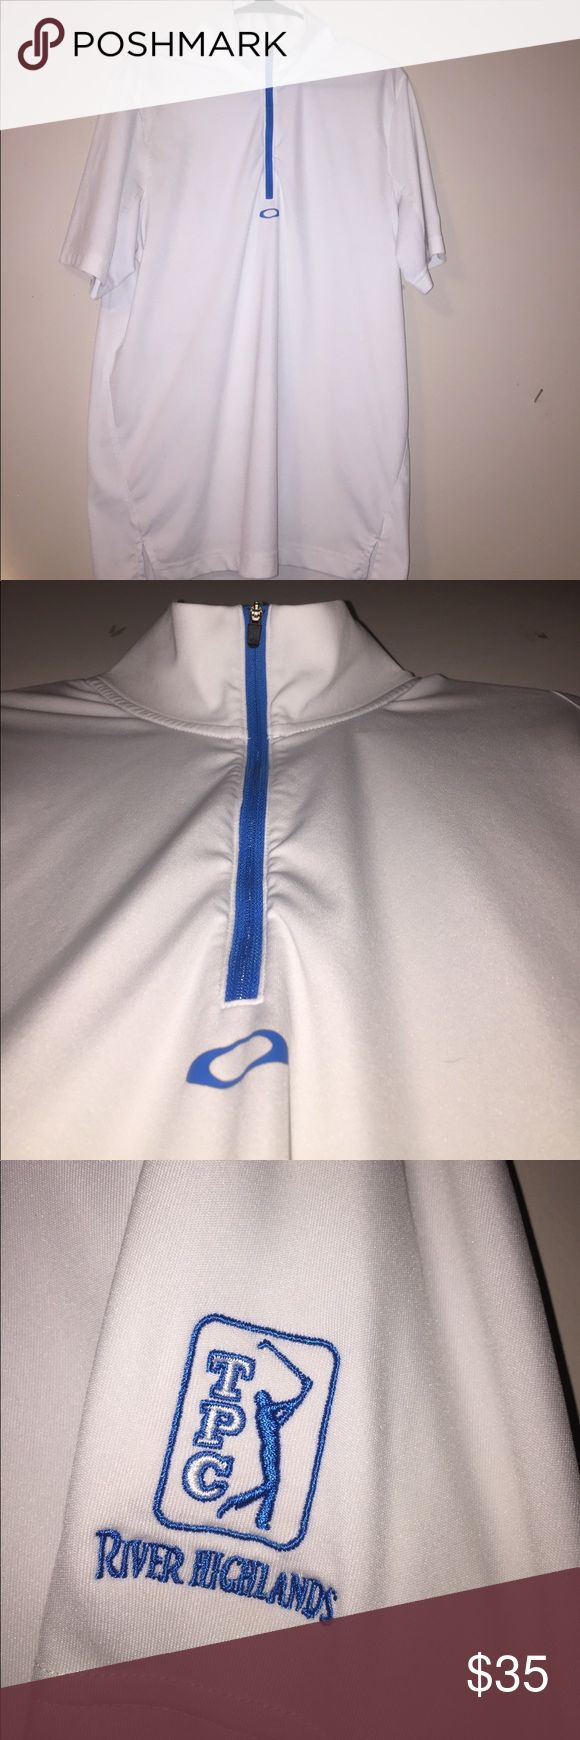 Oakley 1/4 zip golf polo This white and blue Oakley polo should be in every modern day golfer's closet! It was bought at TPC River Highlands at the PGA tournament in CT. It's a really comfortable shirt! Oakley Shirts Polos